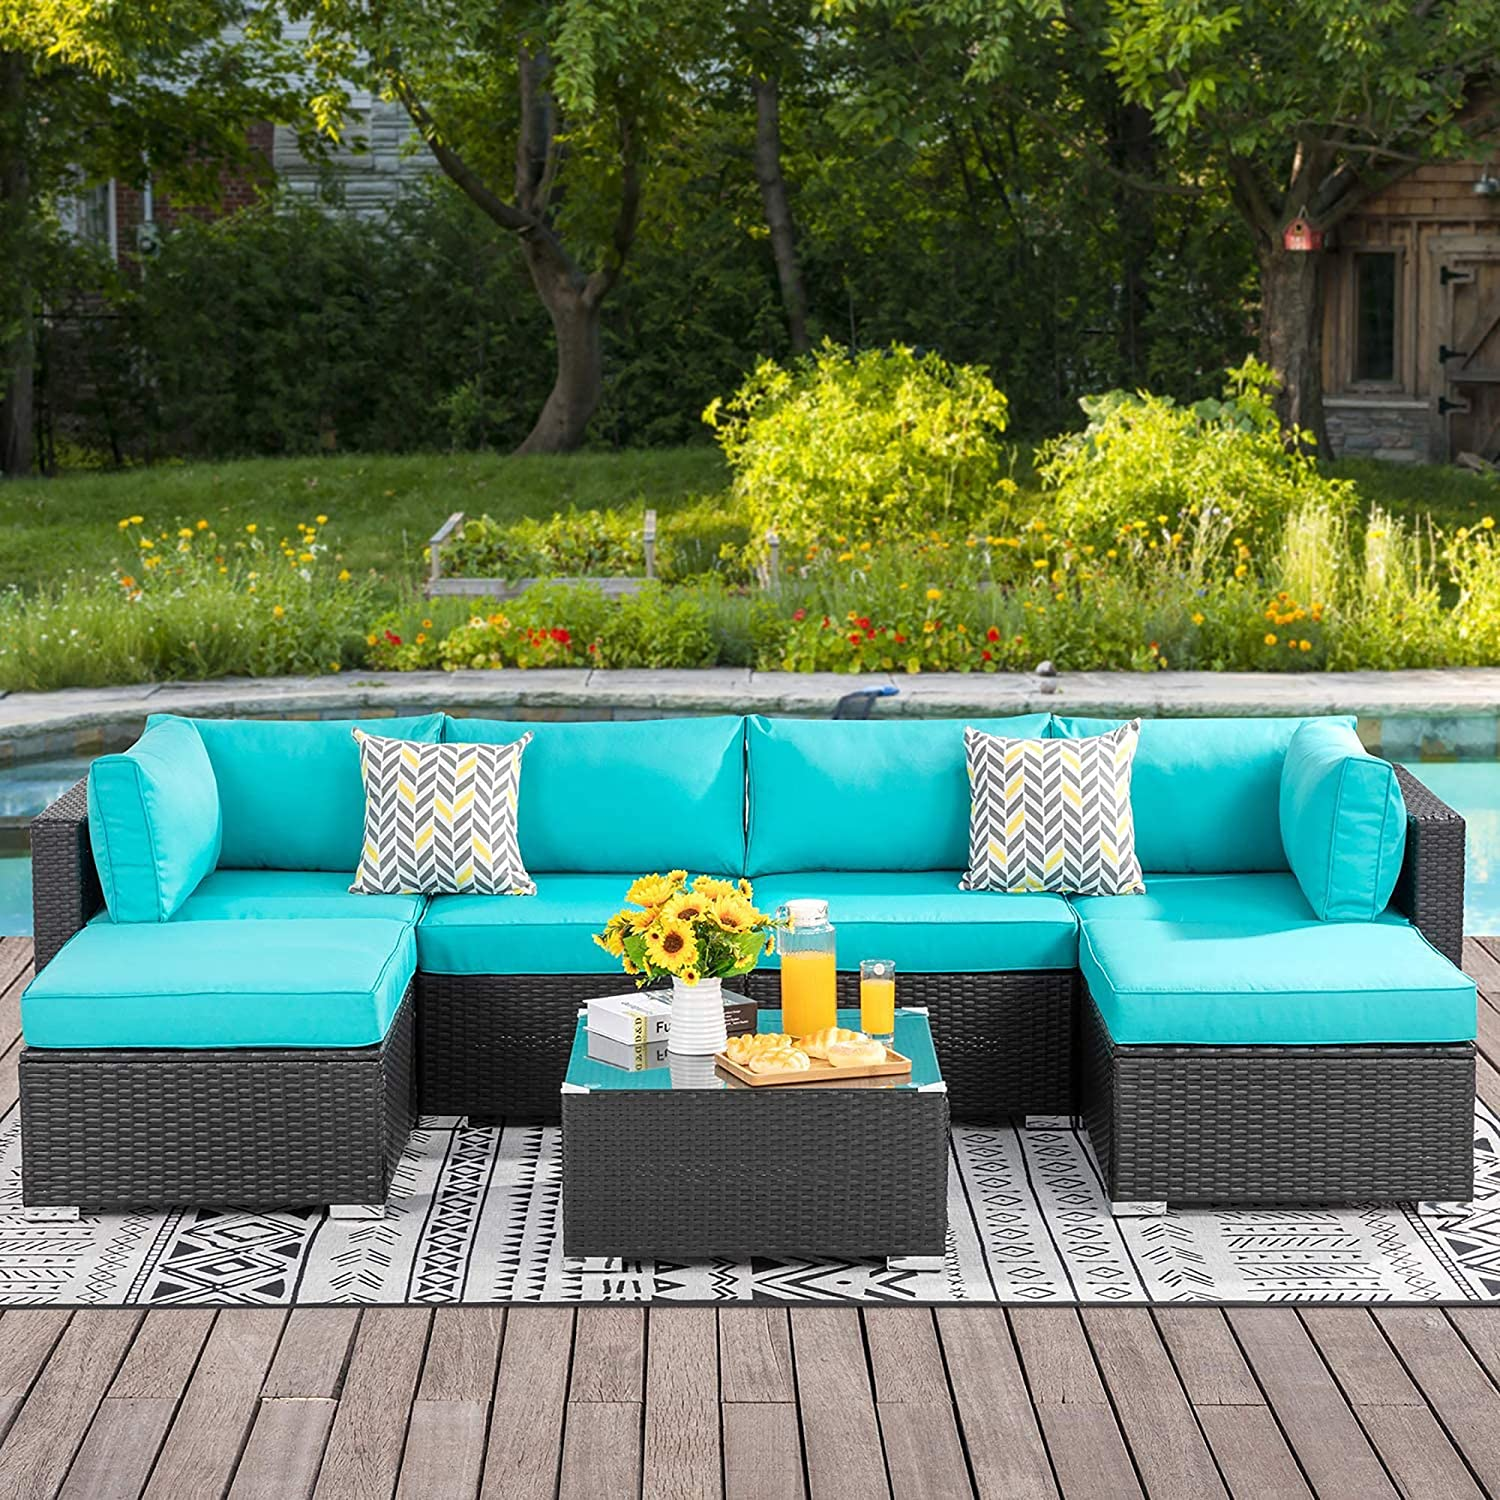 Walsunny 7pcs Patio Outdoor Furniture Sets,Low Back All-Weather Rattan Sectional Sofa with Tea Table&Washable Couch Cushions&Ottoman (Black Rattan) (Blue)